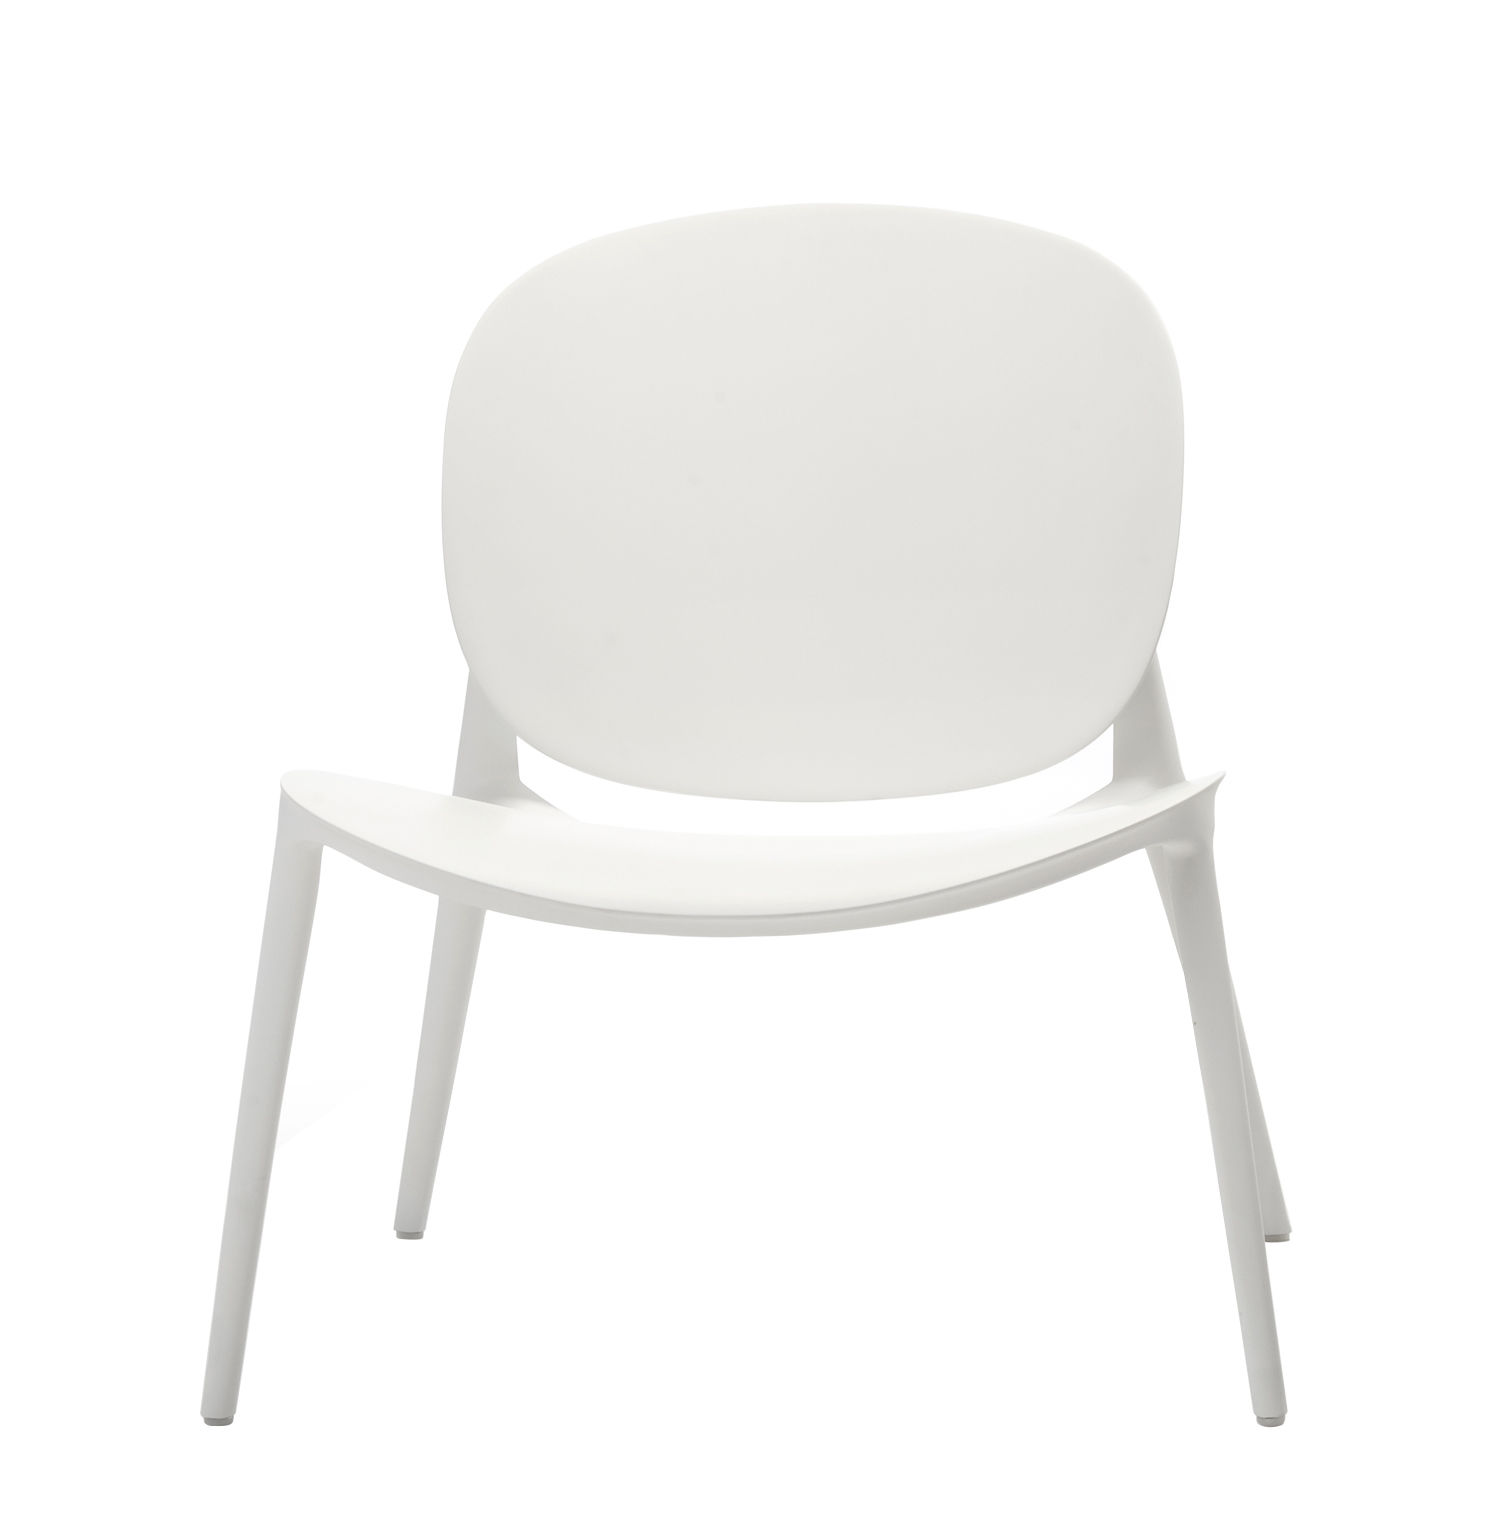 Furniture - Armchairs - Be Bop Low armchair - / Outdoor by Kartell - White - Polypropylene